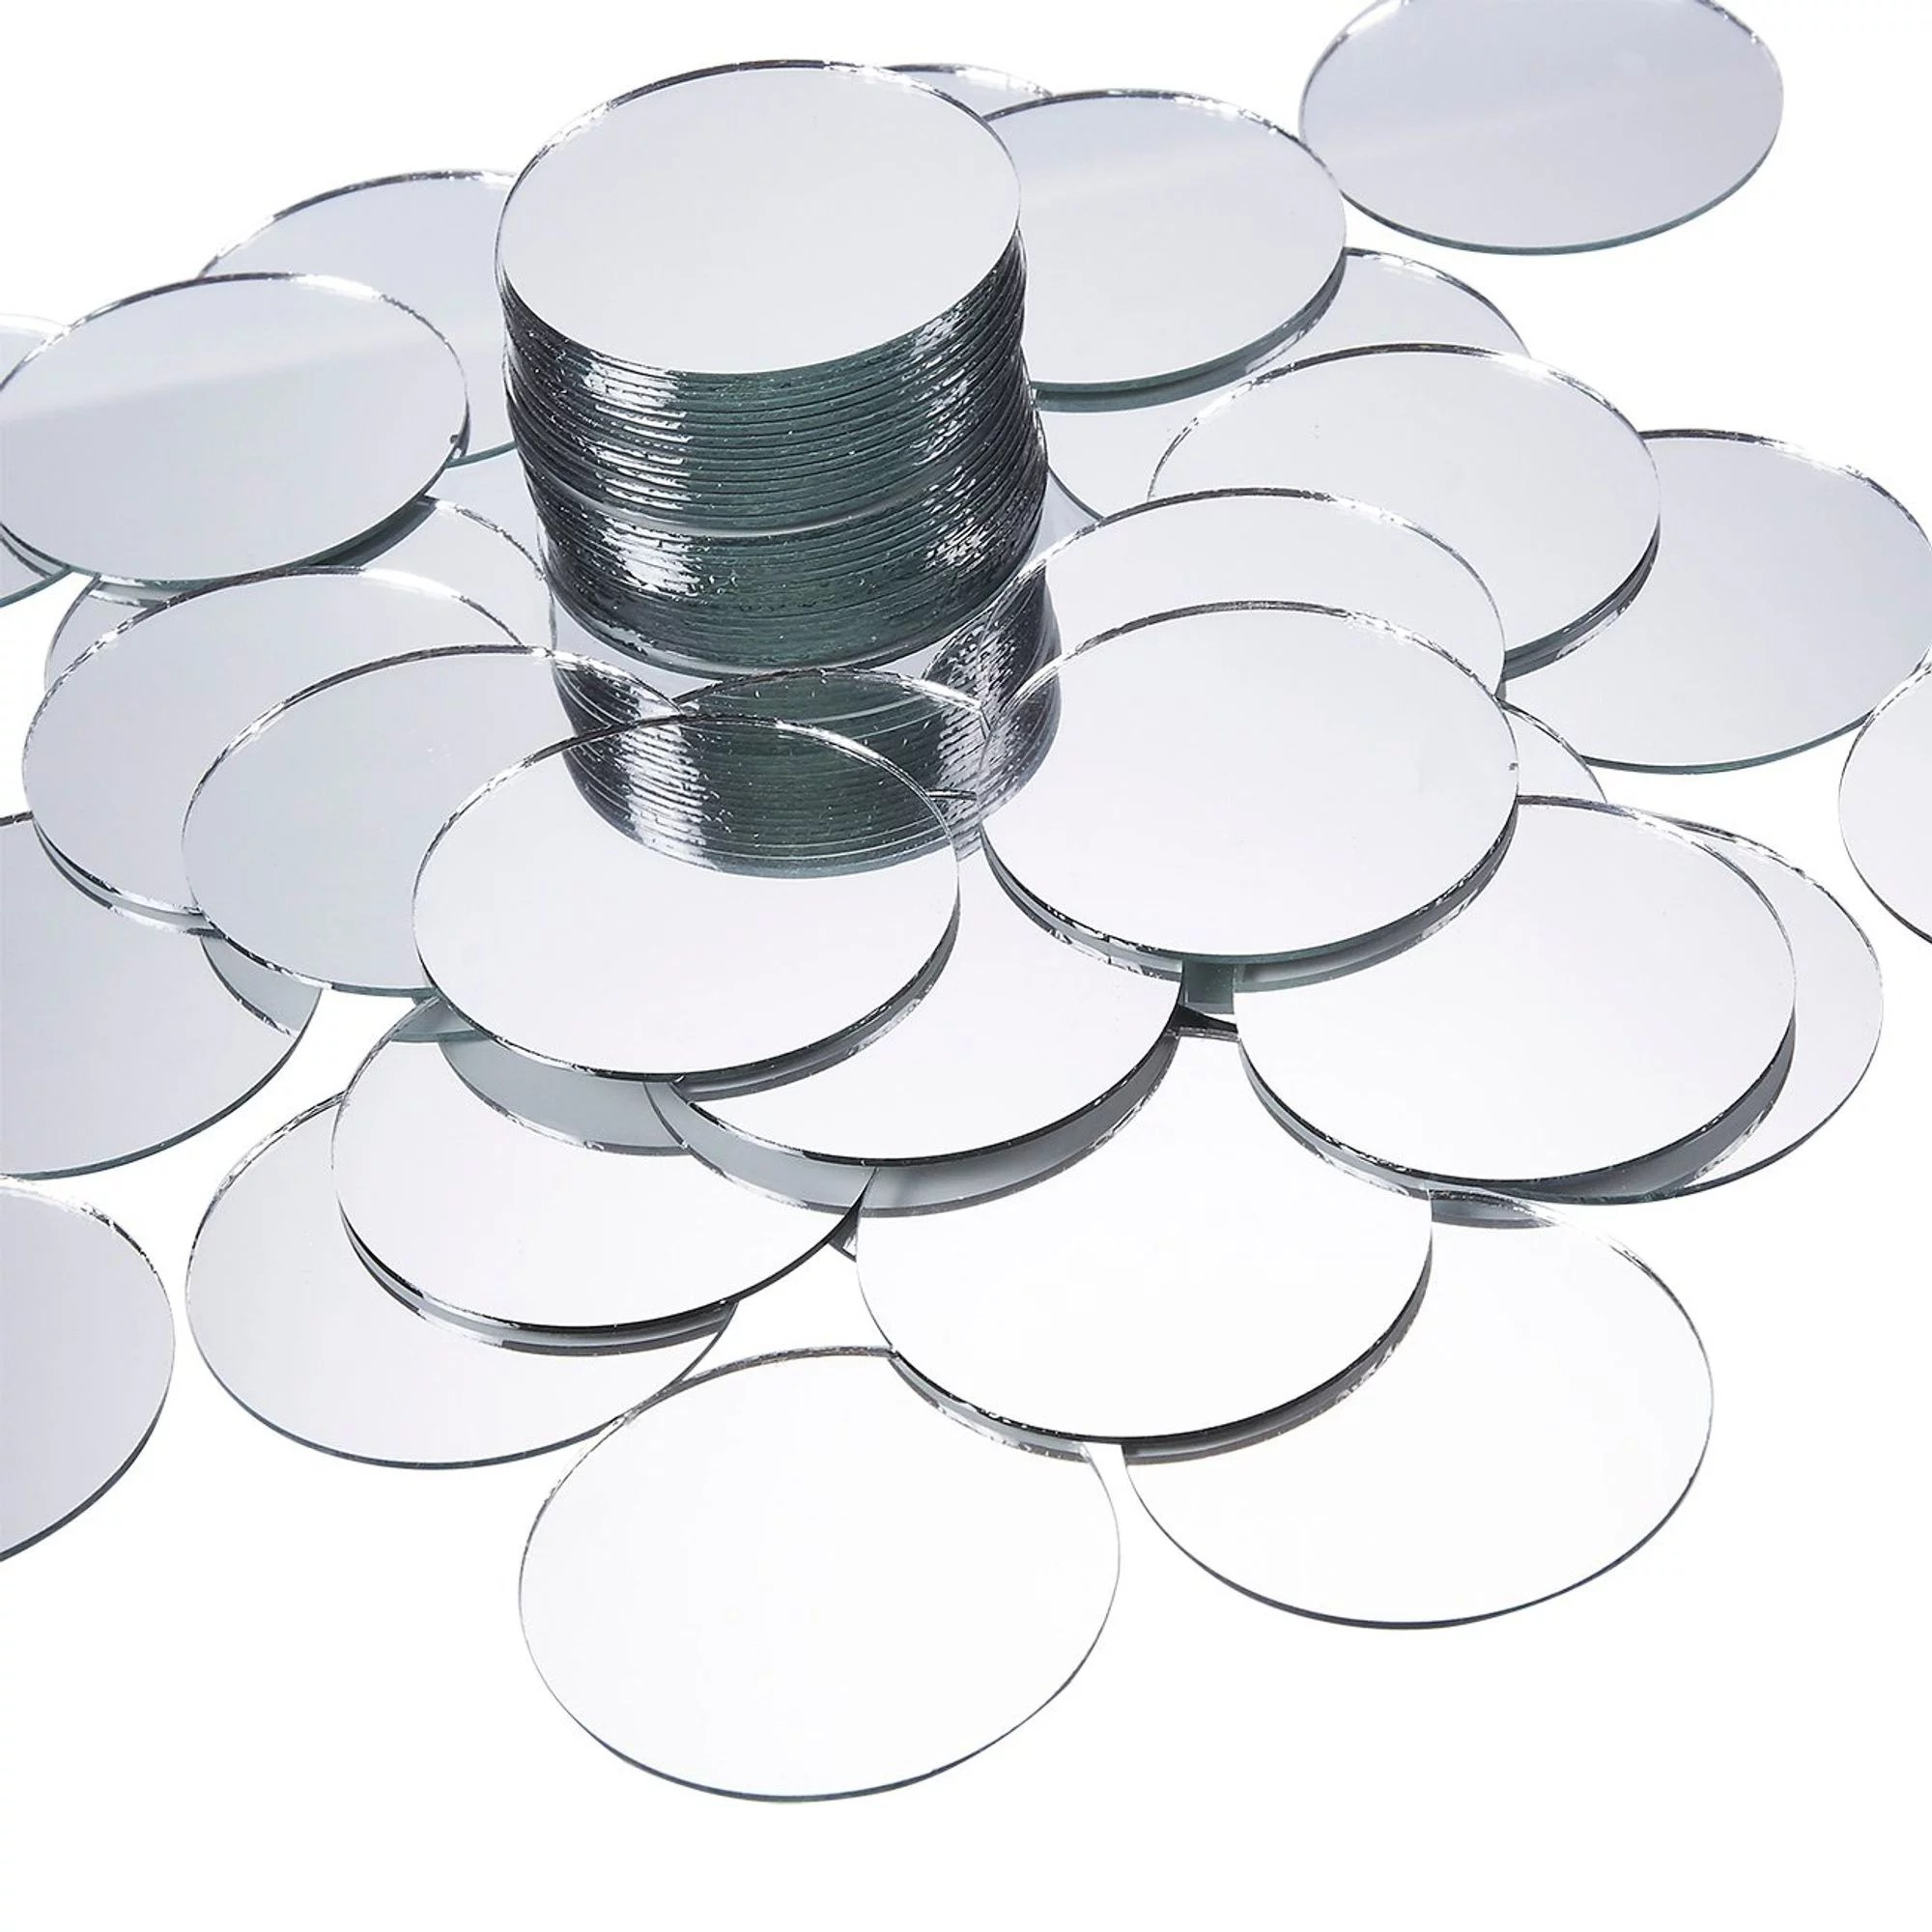 60 pack mini craft mirrors 2 inches circle round glass mosaic tile pieces small crafts mirror for home wall decoration crafts diy projects